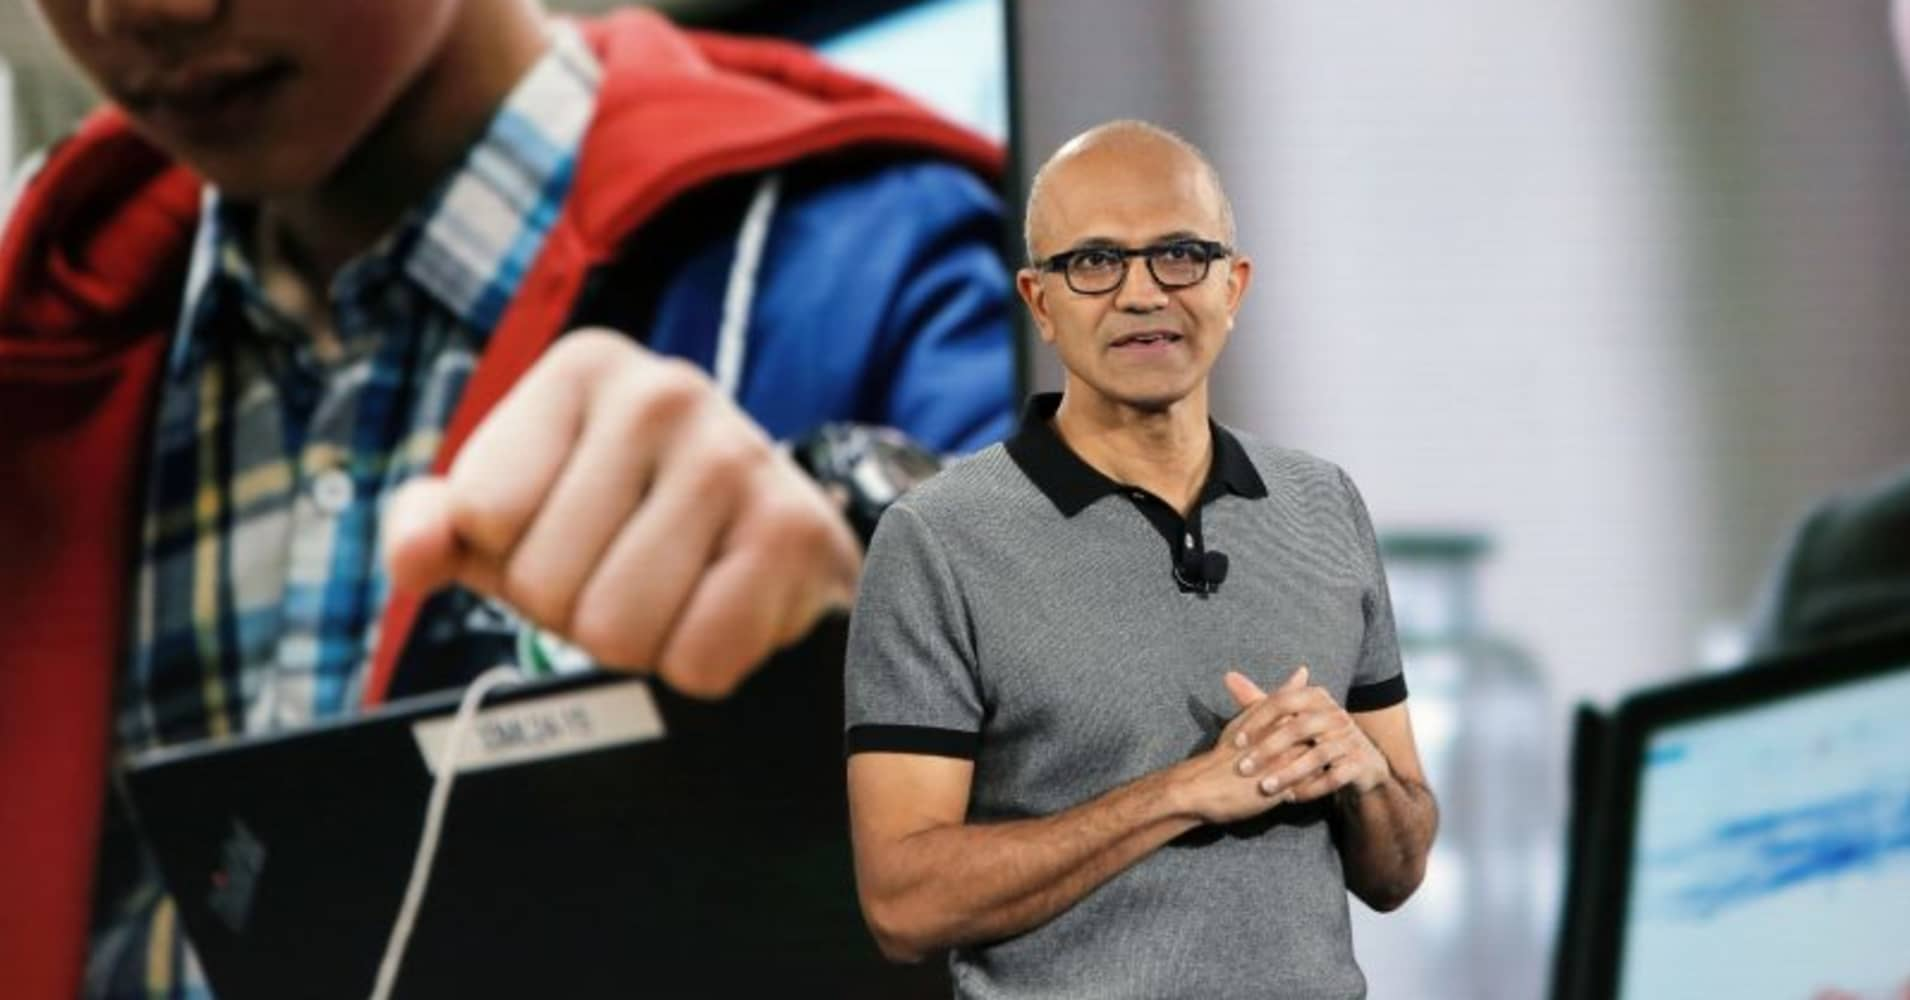 Microsoft is building out A.I., but here's what it thinks could go wrong